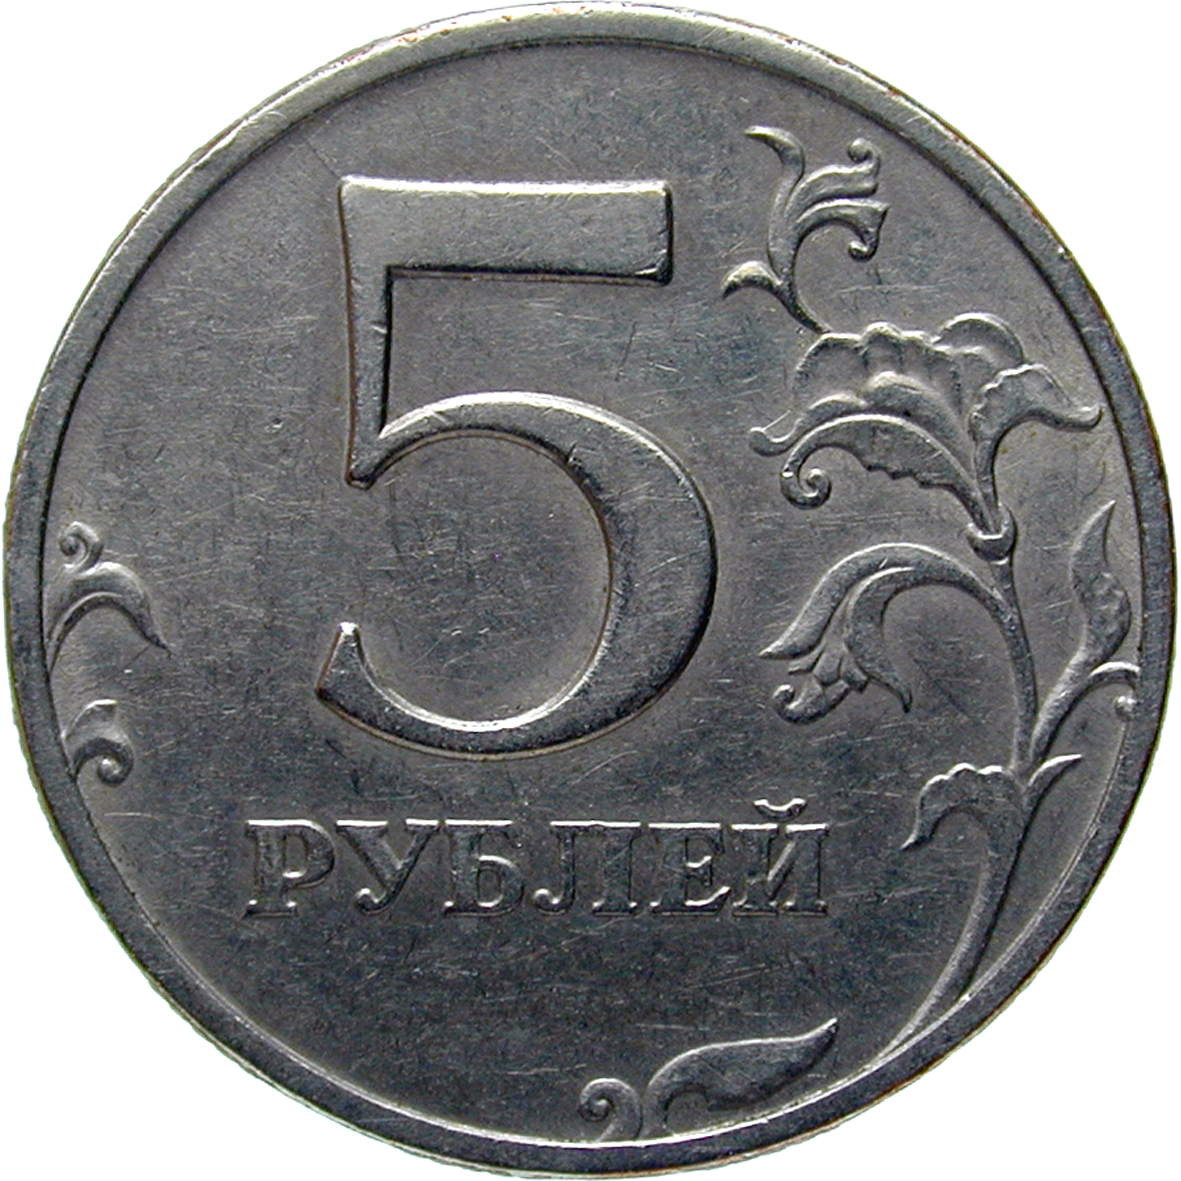 Russian Federation, 5 Rubles 1997 (reverse)